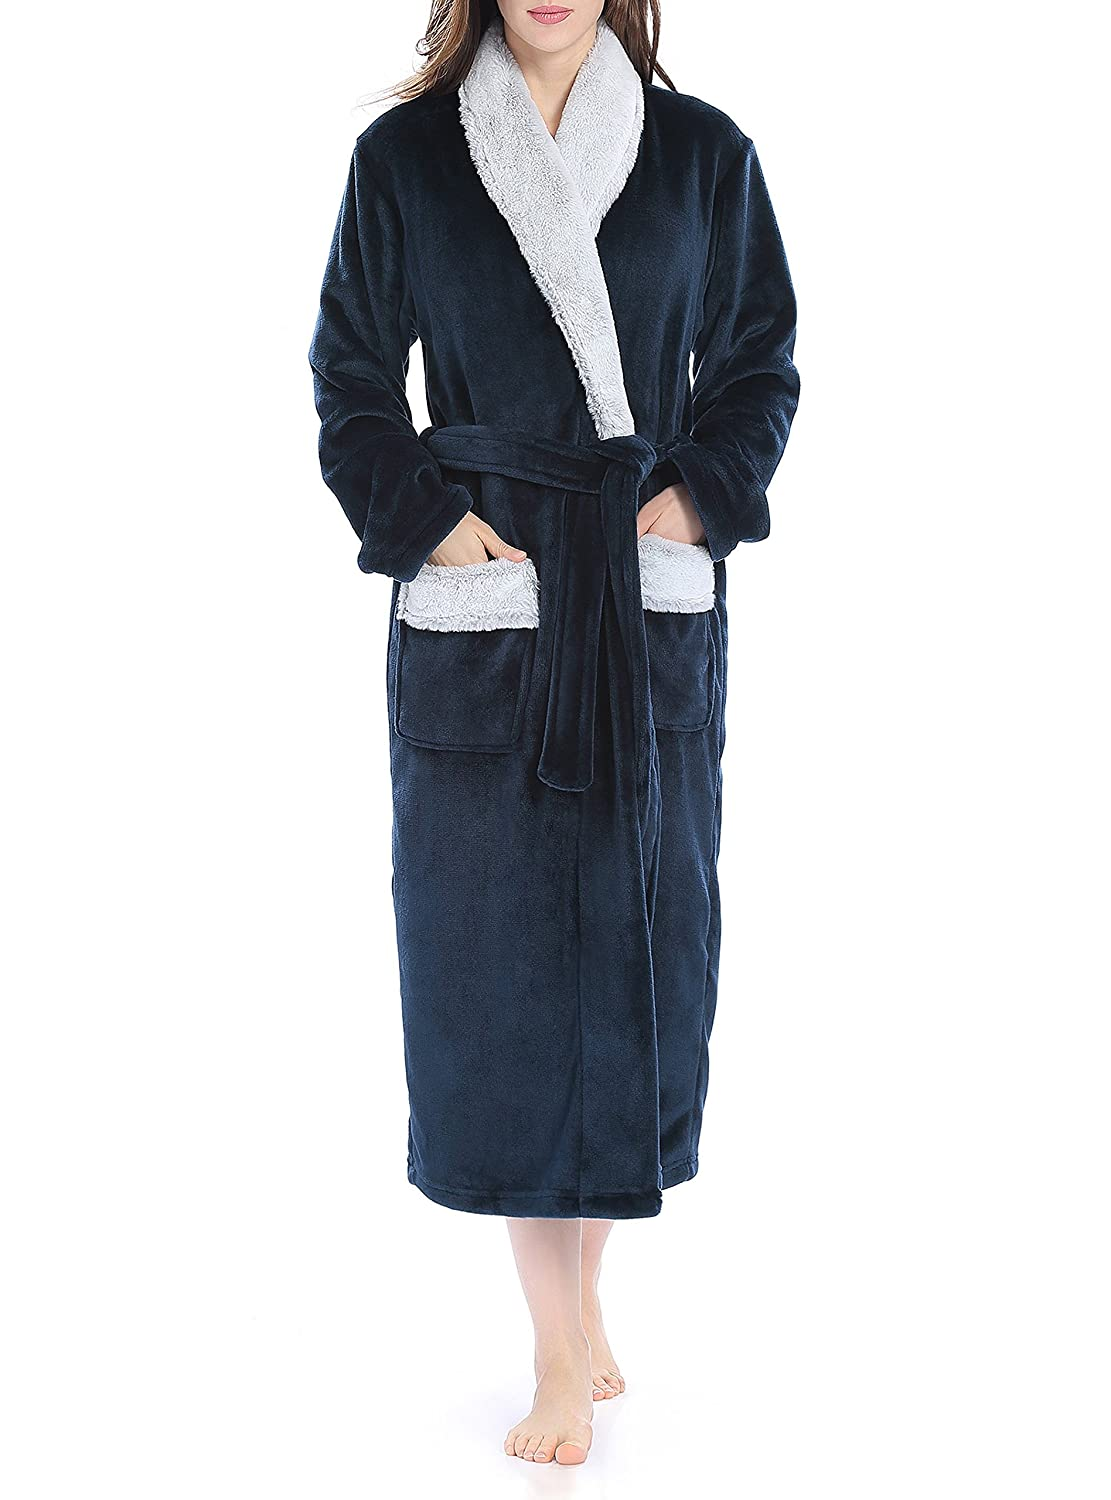 Genuwin Women's Fleeced Long Shawl Collar Bathrobe Gown Full Length Loungewear CN-Smashing